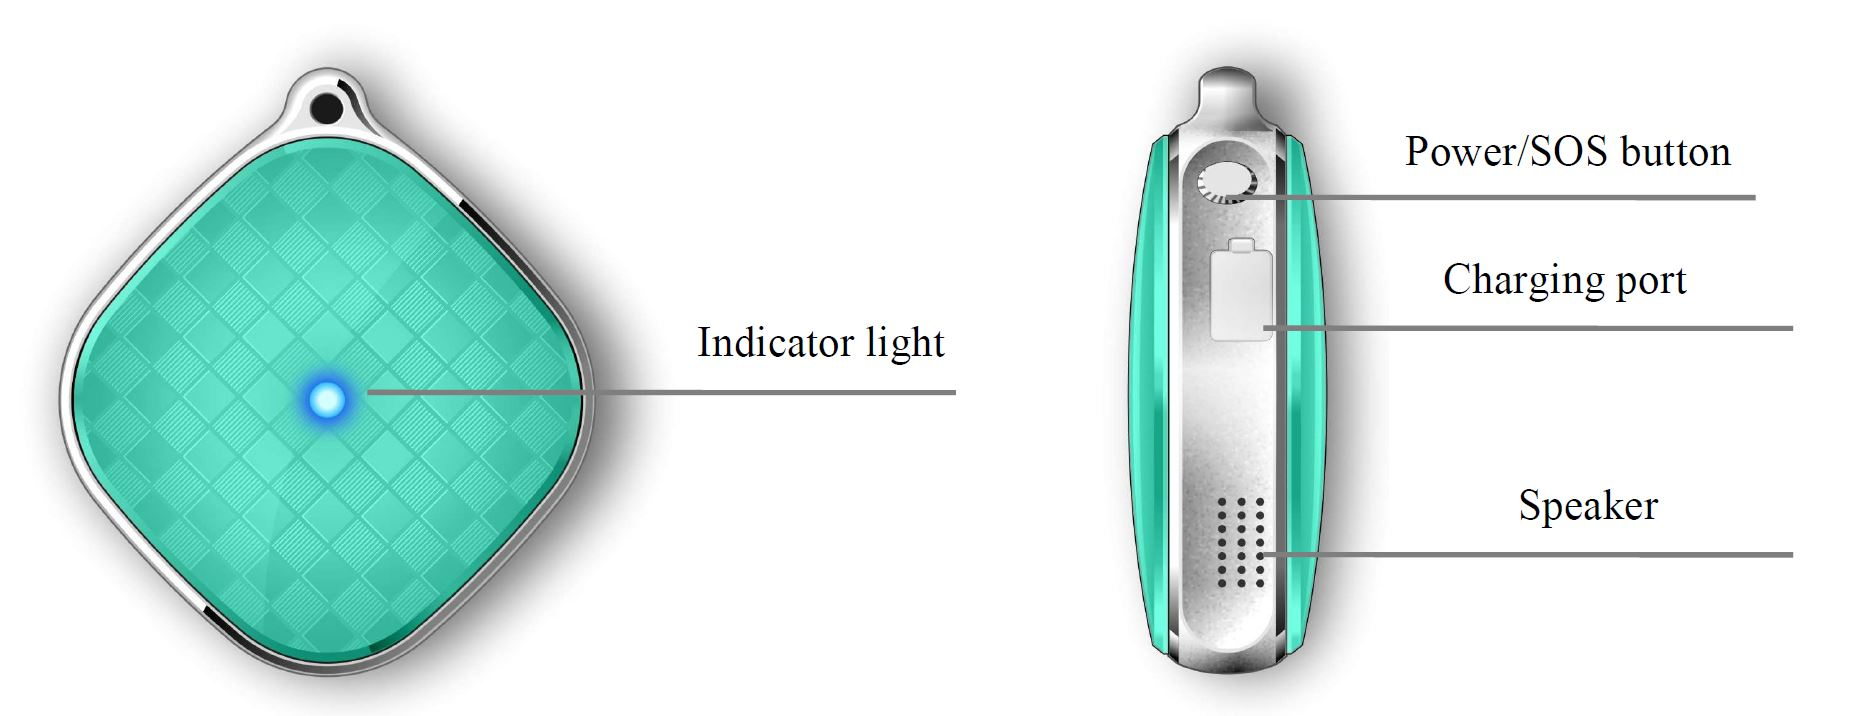 Pendant Gps Tracker For Elderly Dementia Patients in addition Smartwatches For The Elderly together with Pendant Gps Tracker For Elderly Dementia Patients further Battery Location On Iphone 5 also ZWxkZXJseSBkZW1lbnRpYQ. on pendant gps tracker for elderly dementia patients